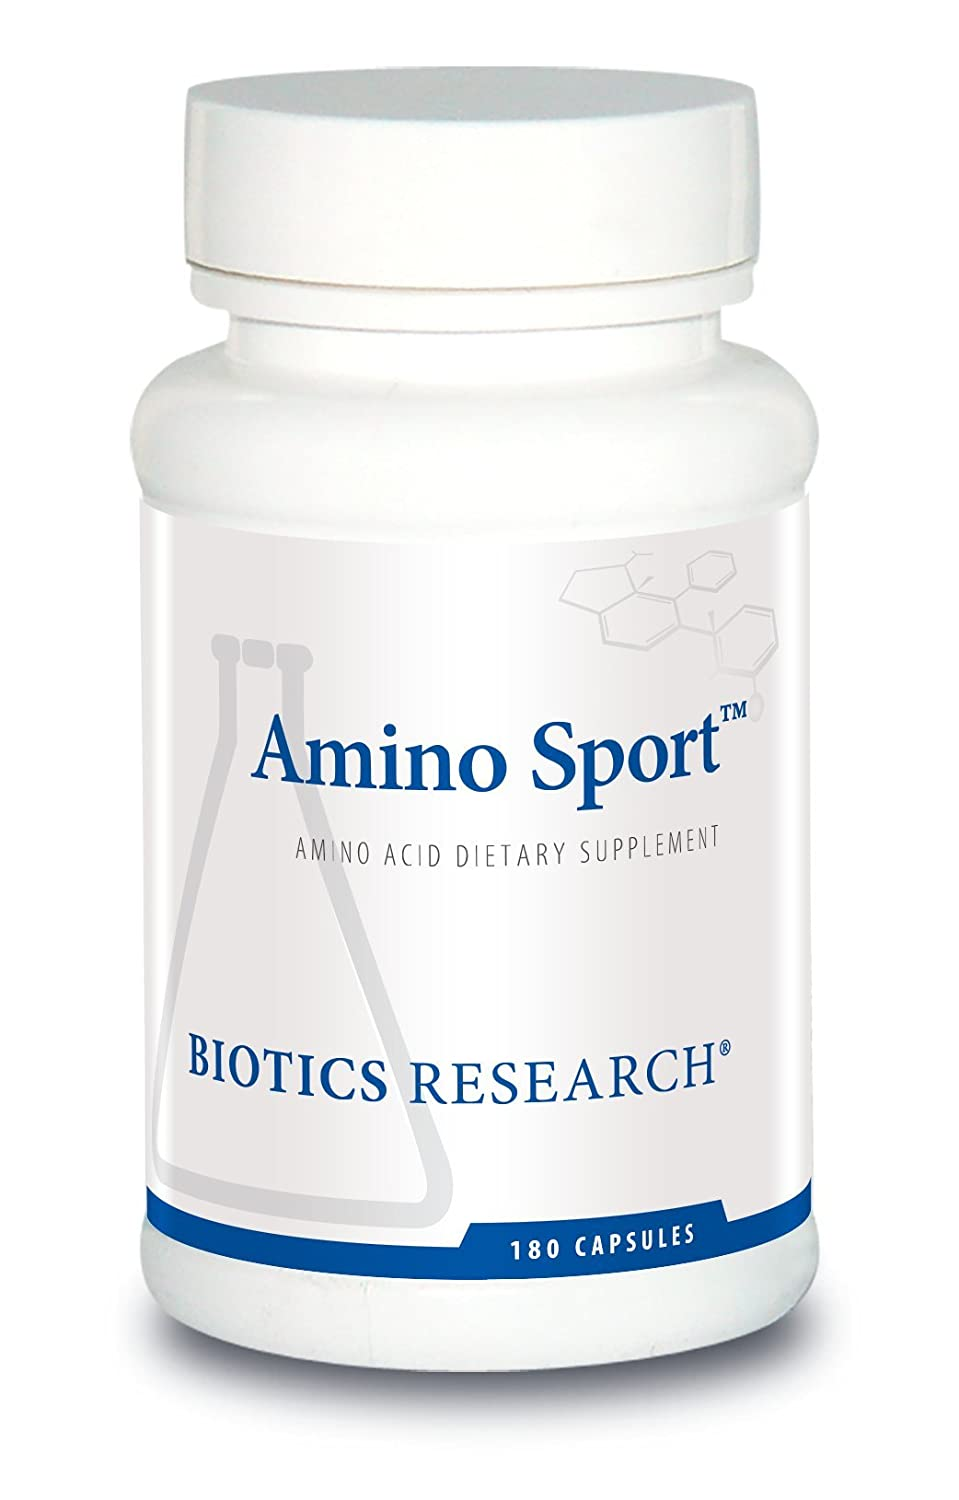 Biotics Research Amino Sport – Broad Spectrum Amino Acids, Essential Amino Acids, BCAAs, Sports Recovery, Support Lean Muscle Mass 180 Caps